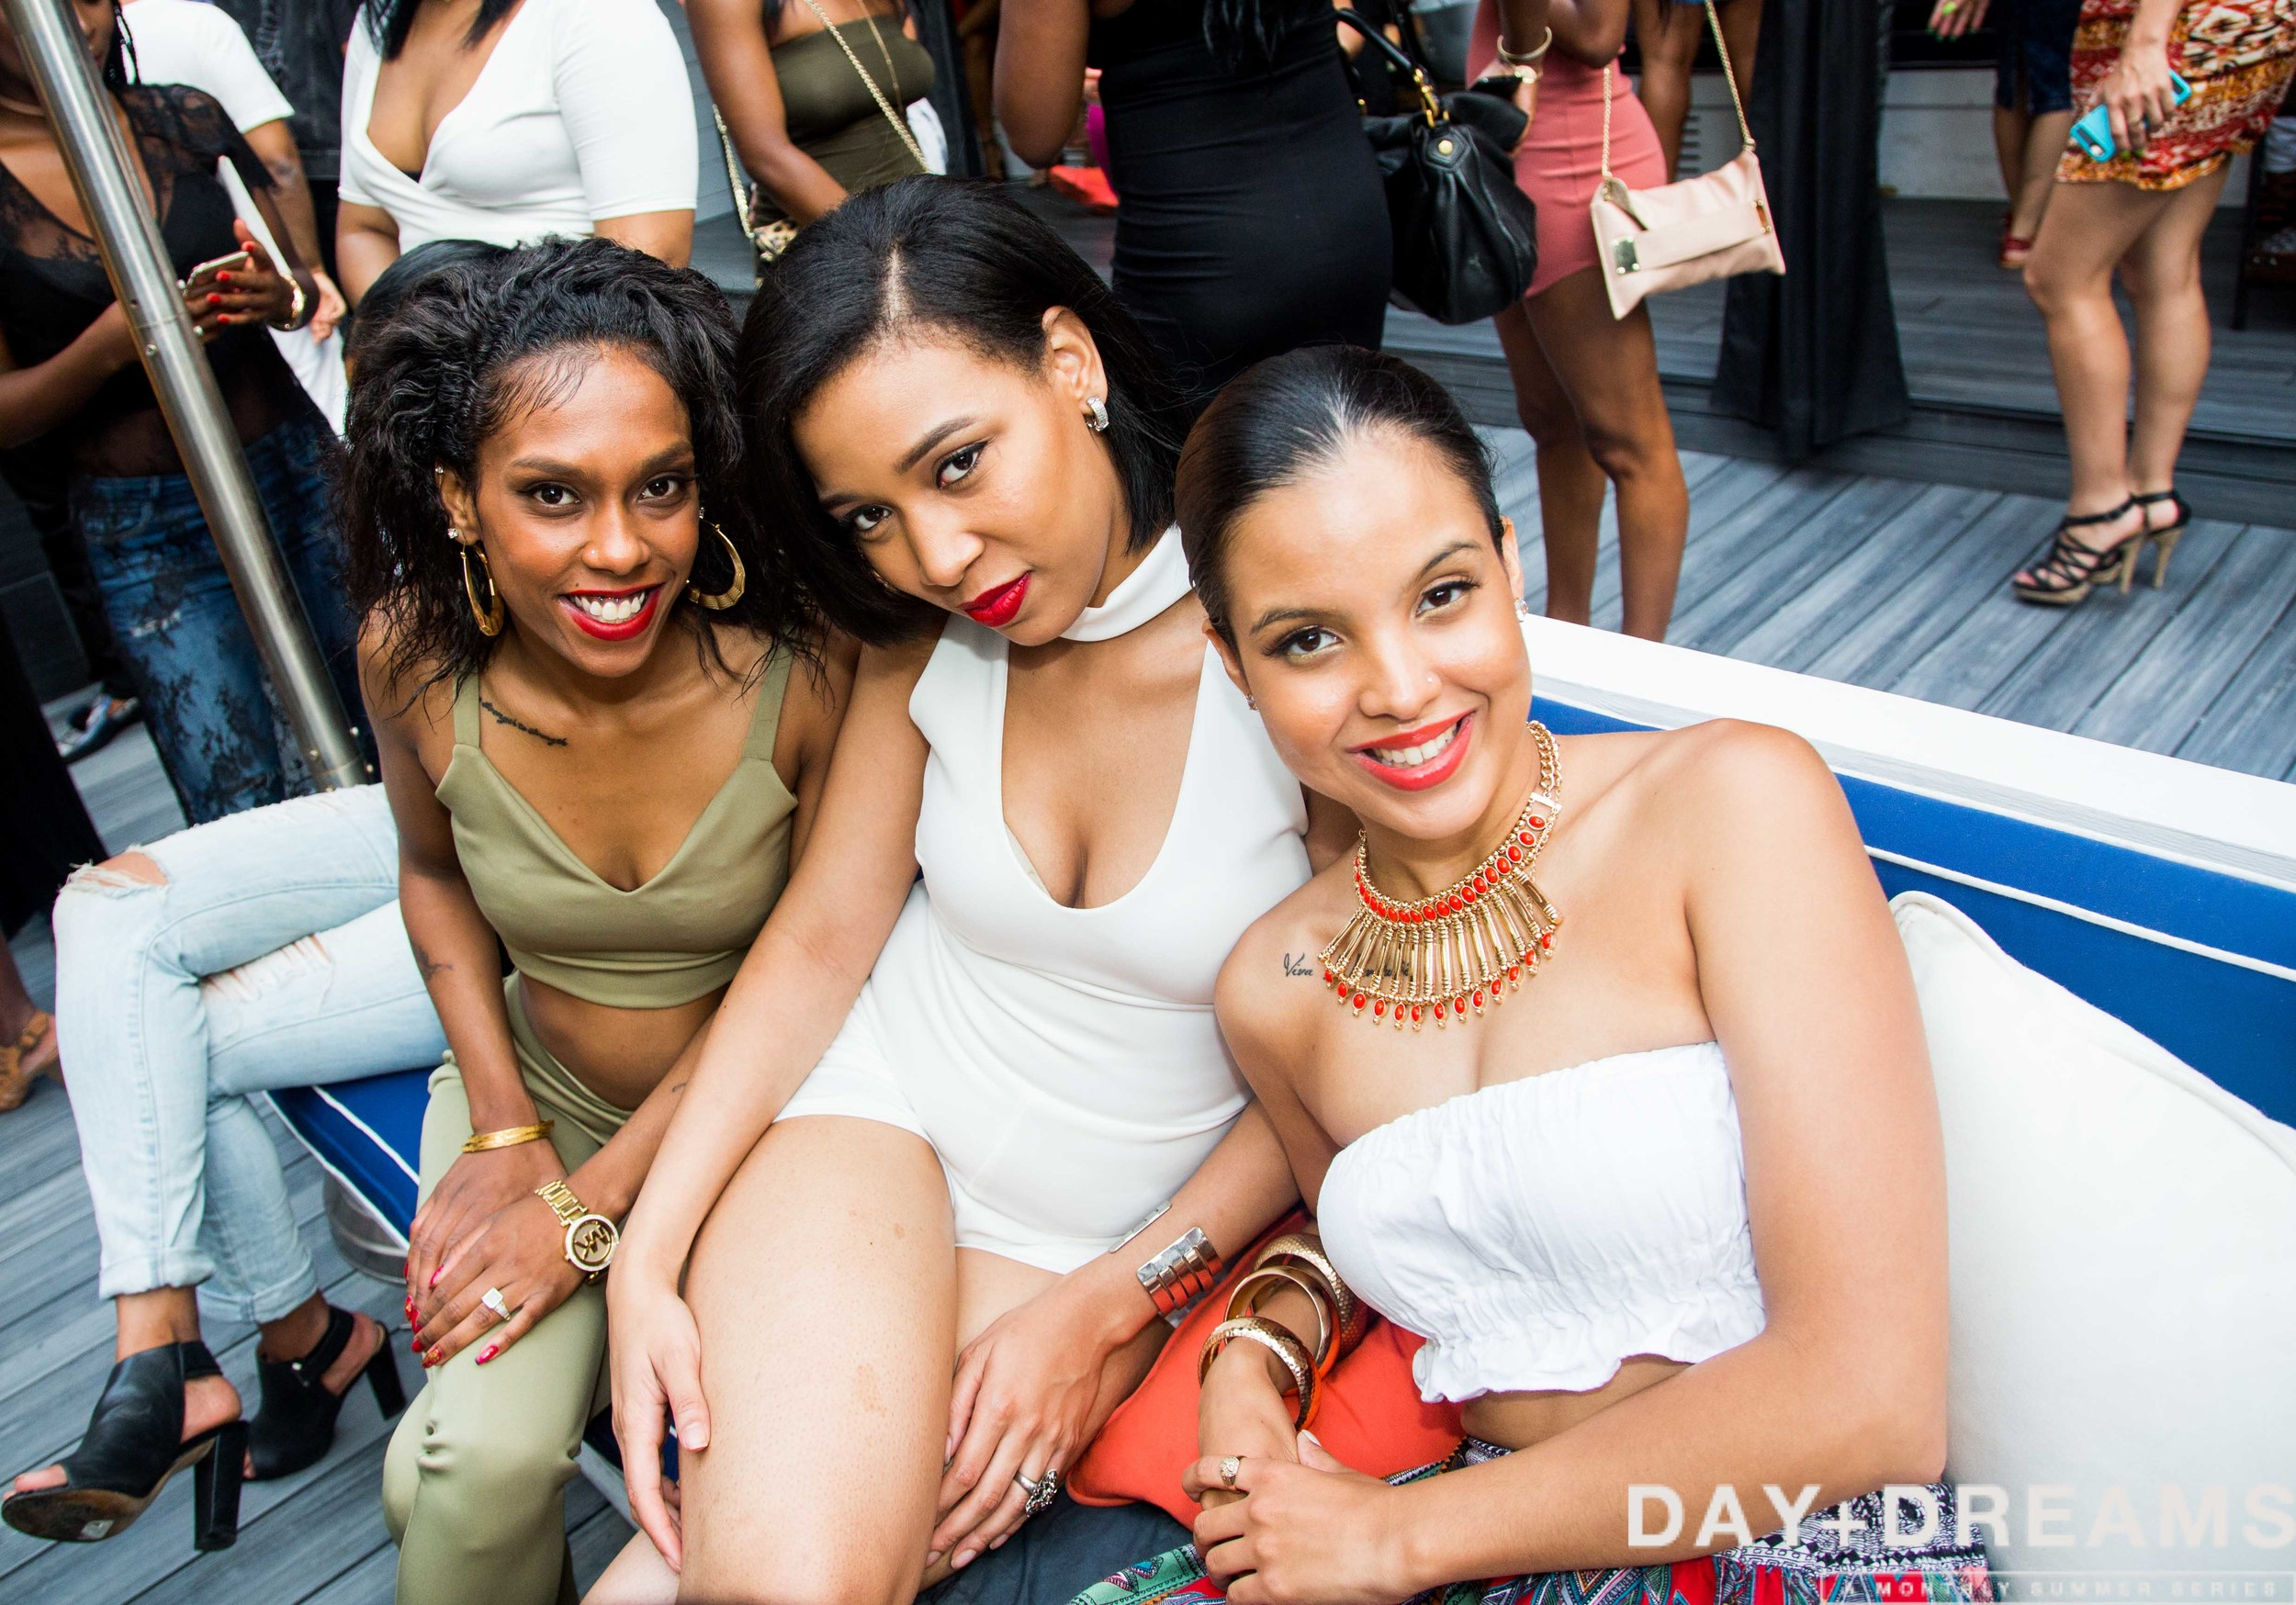 DAY DREAMS | June 2016 at EFS